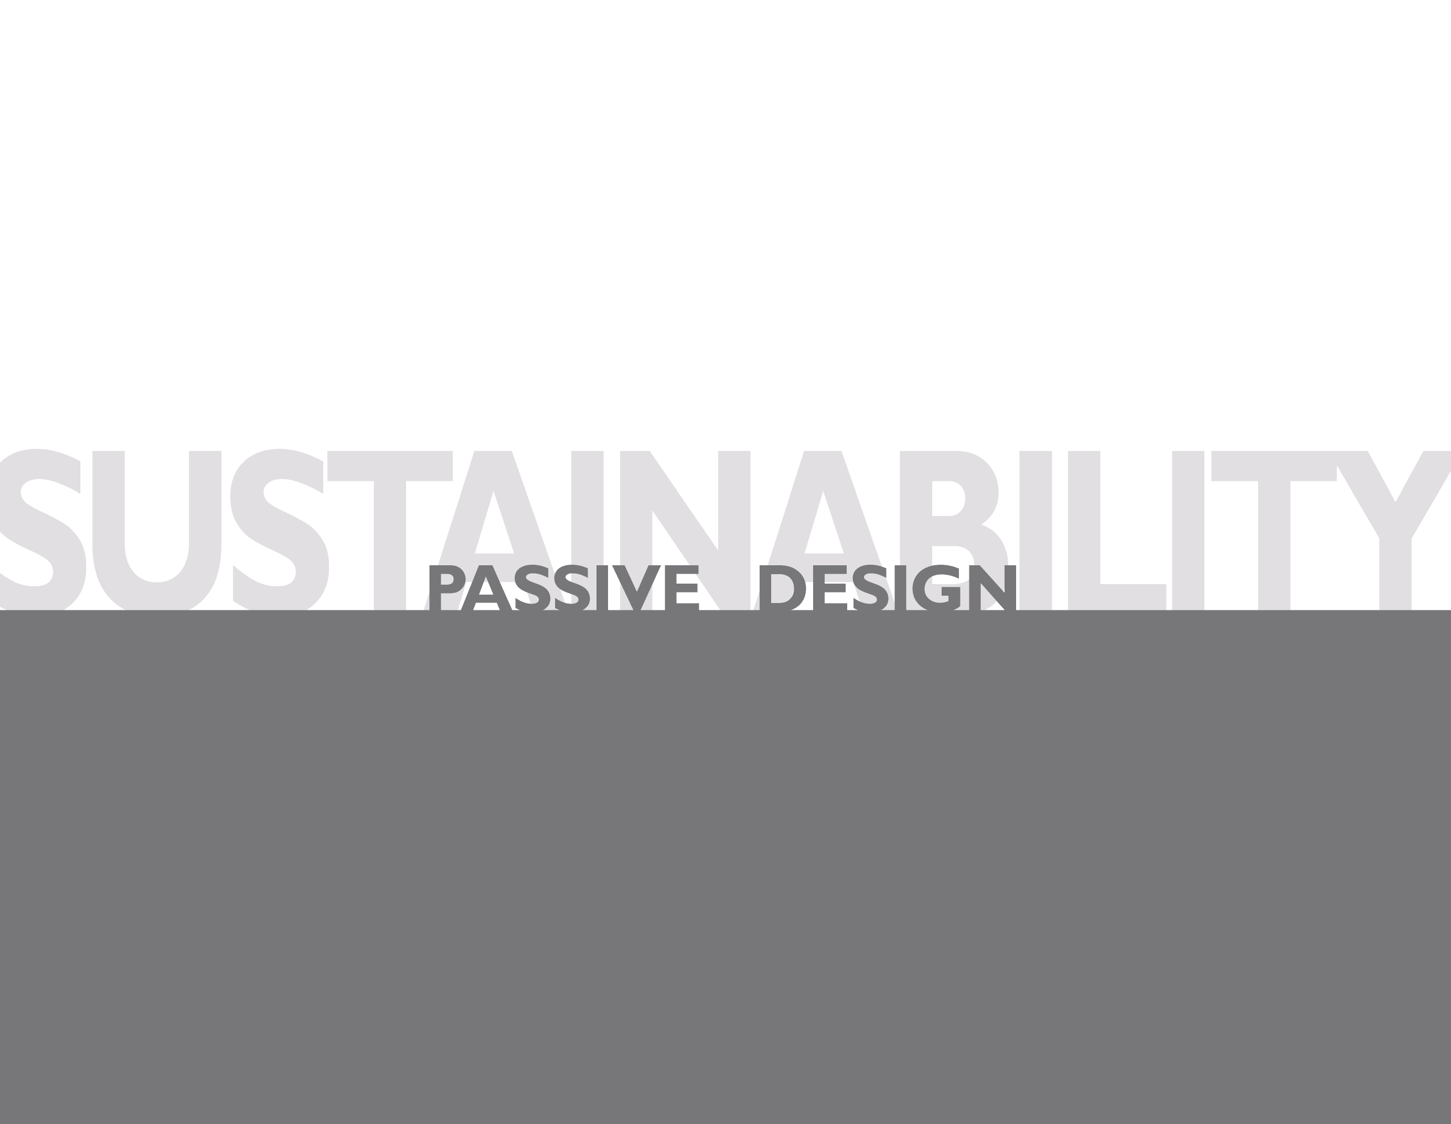 blog - SUSTAINABILITY Passive Design 02